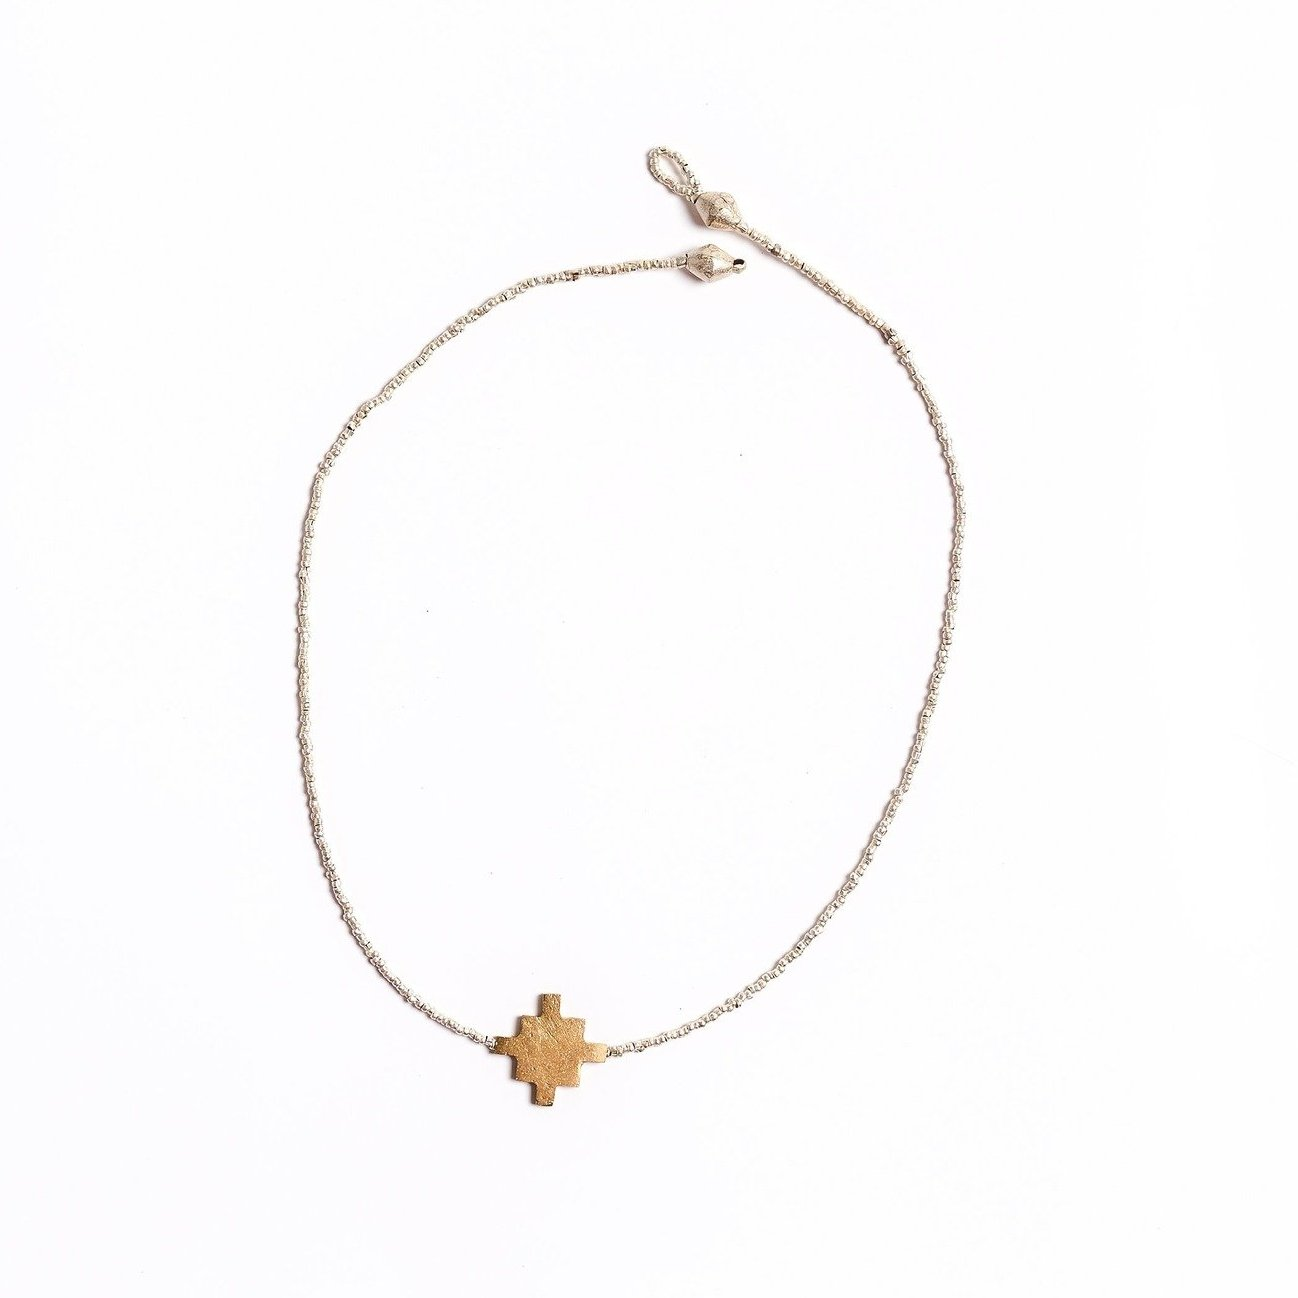 CG Signature Necklace - Shop Collective Goods